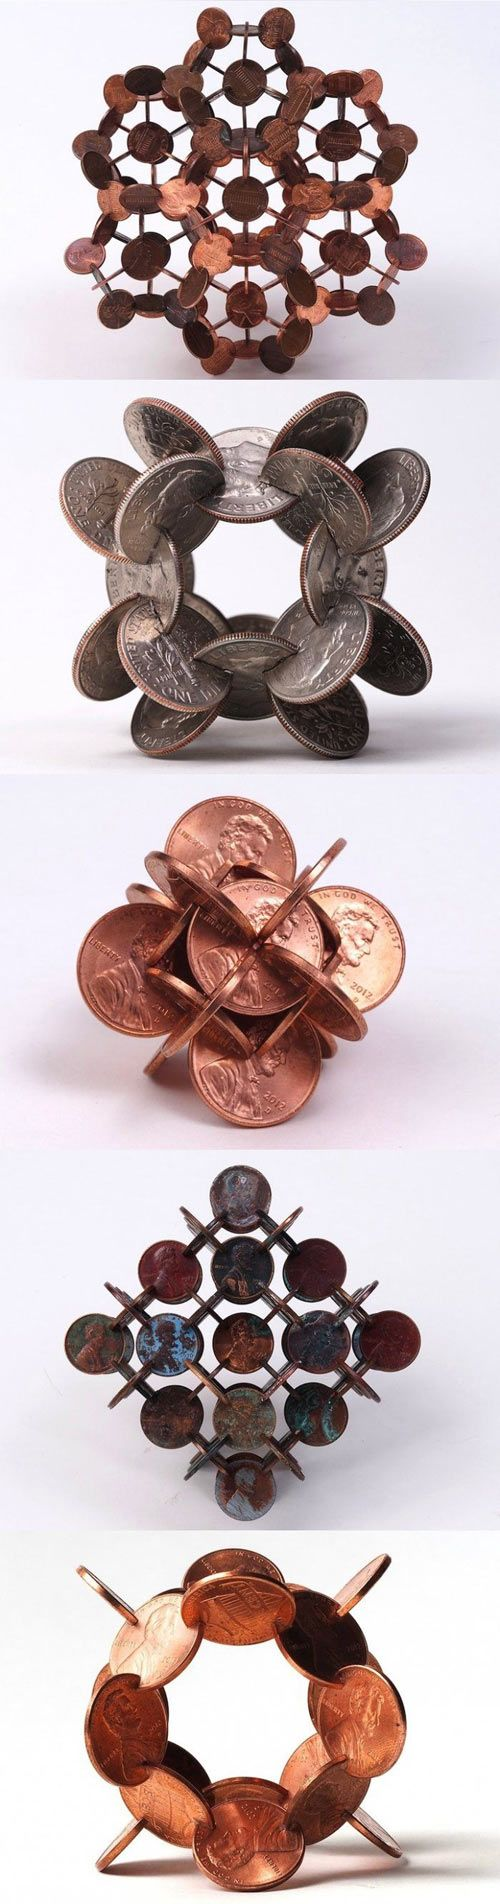 cool-coins-shaped-art-penny                                                                                                                                                                                 More